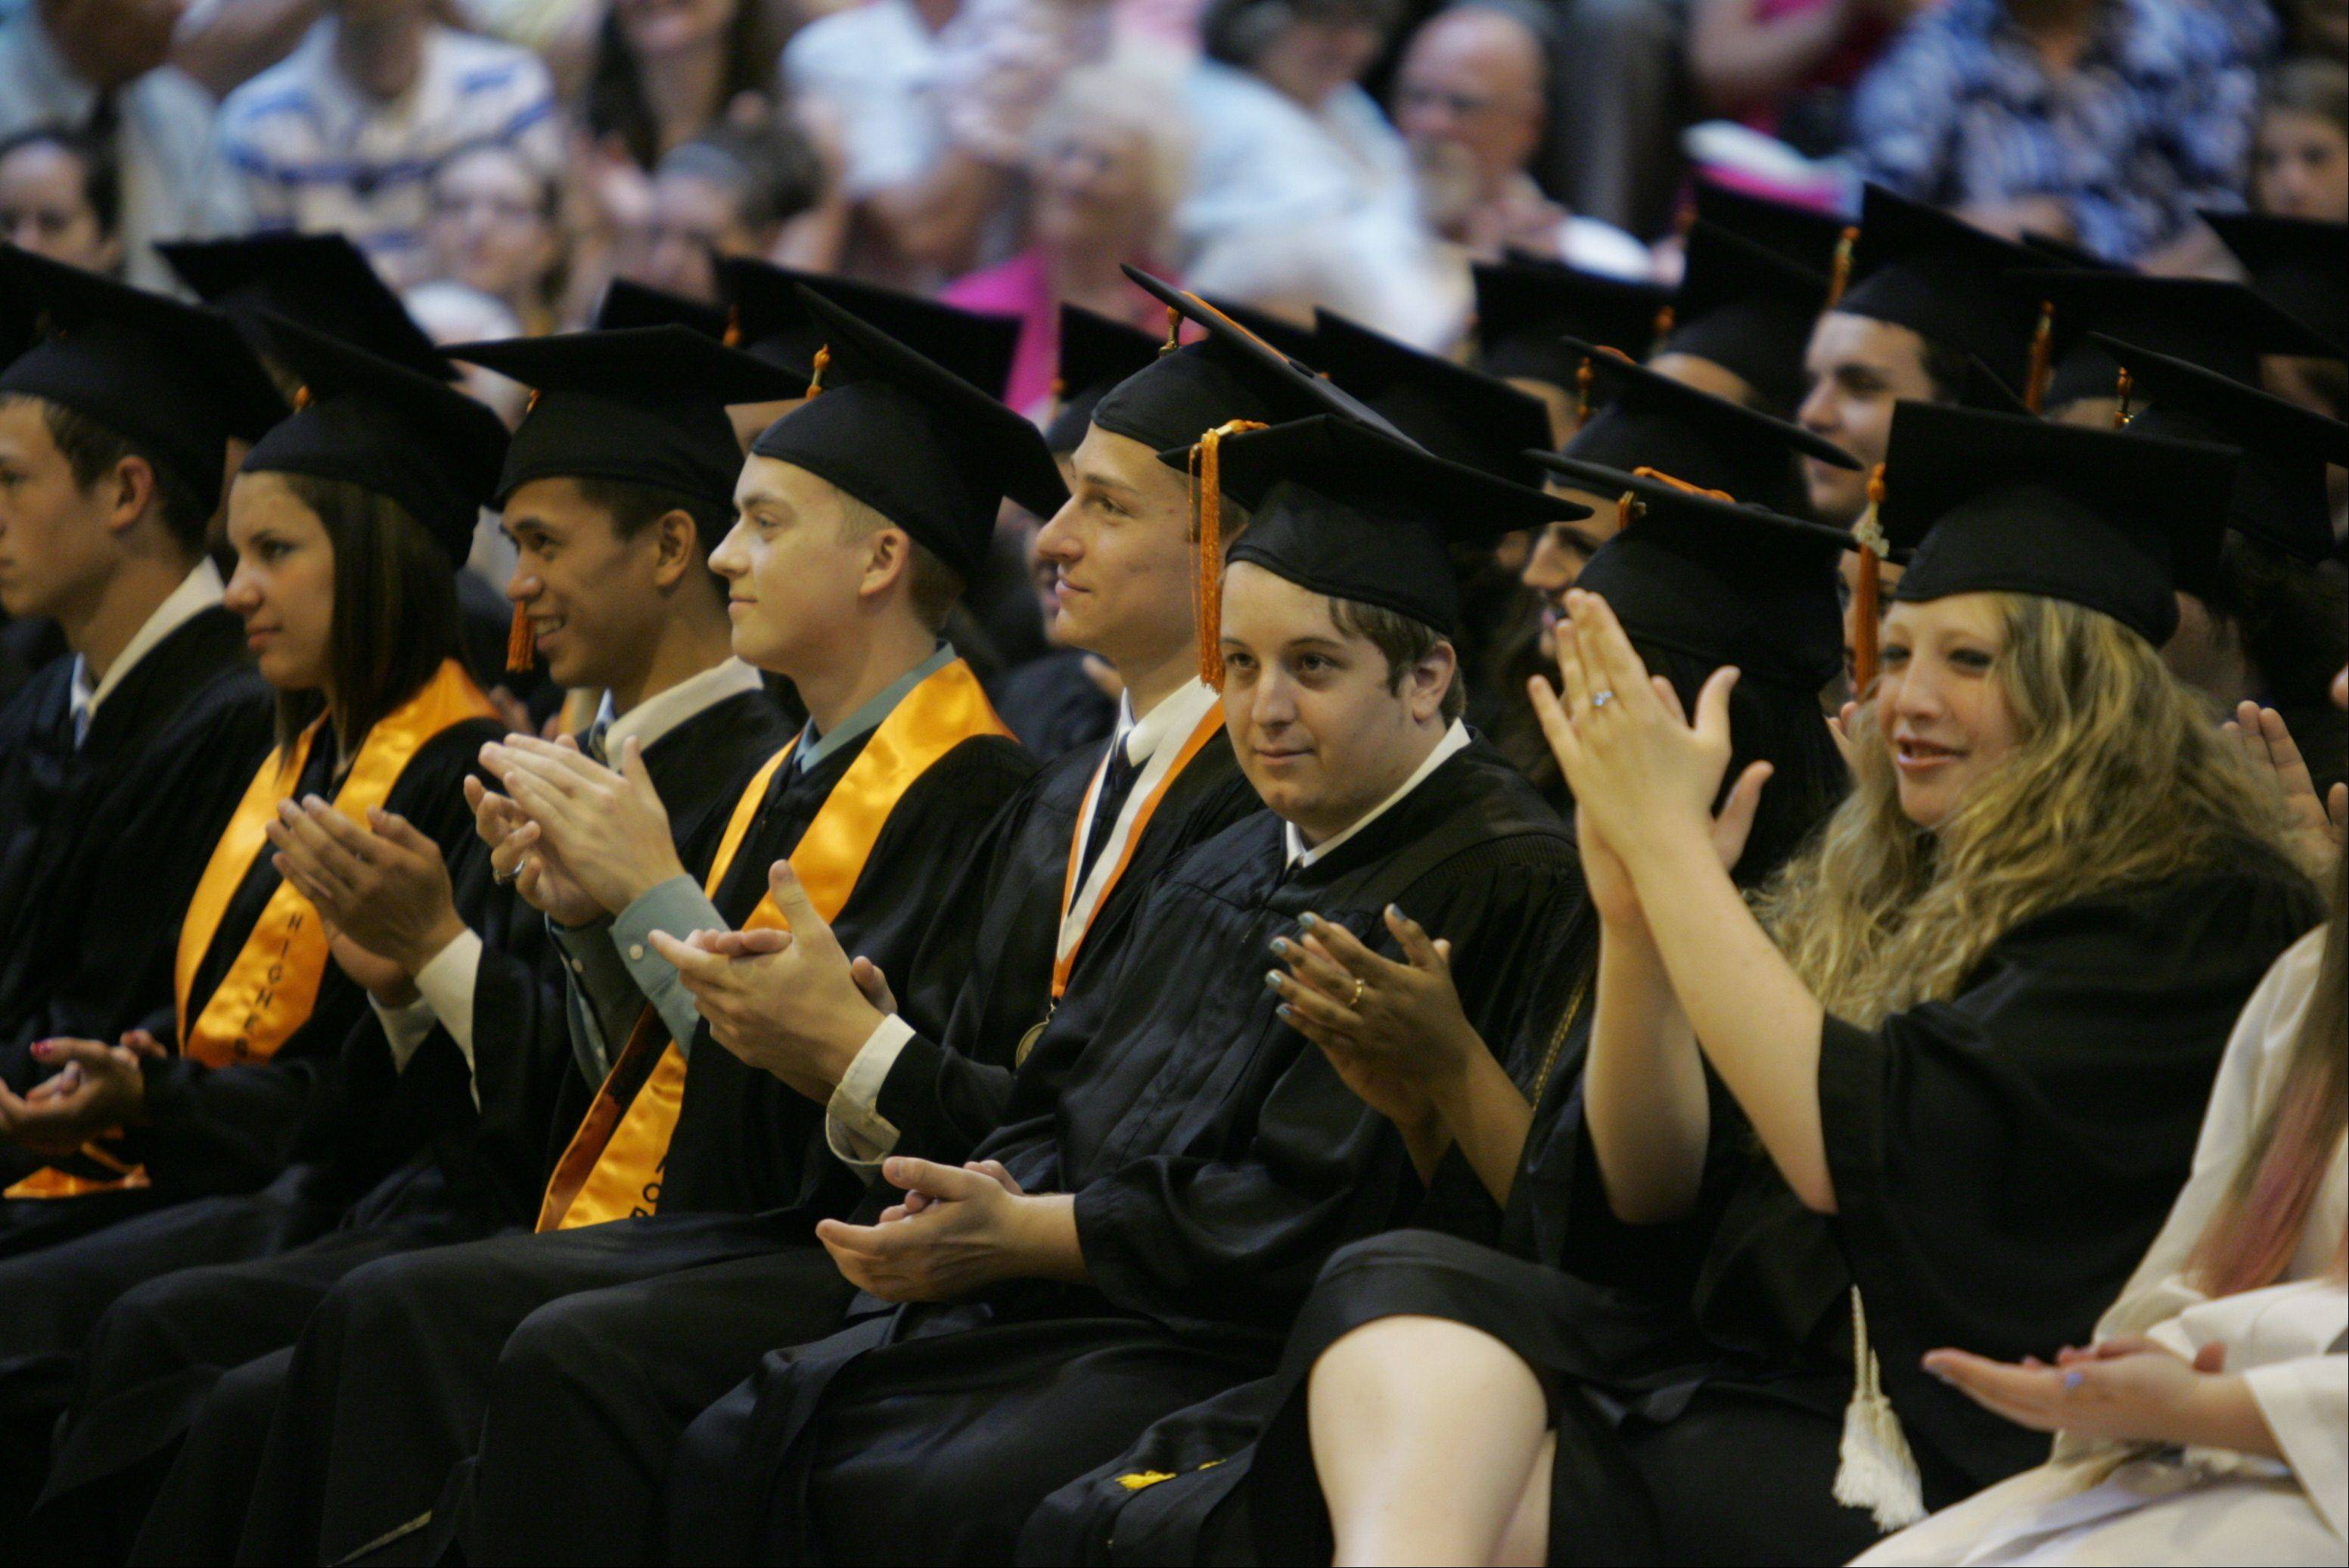 Images from the John Hersey High School graduation on Sunday, June 3 in Arlington Heights.